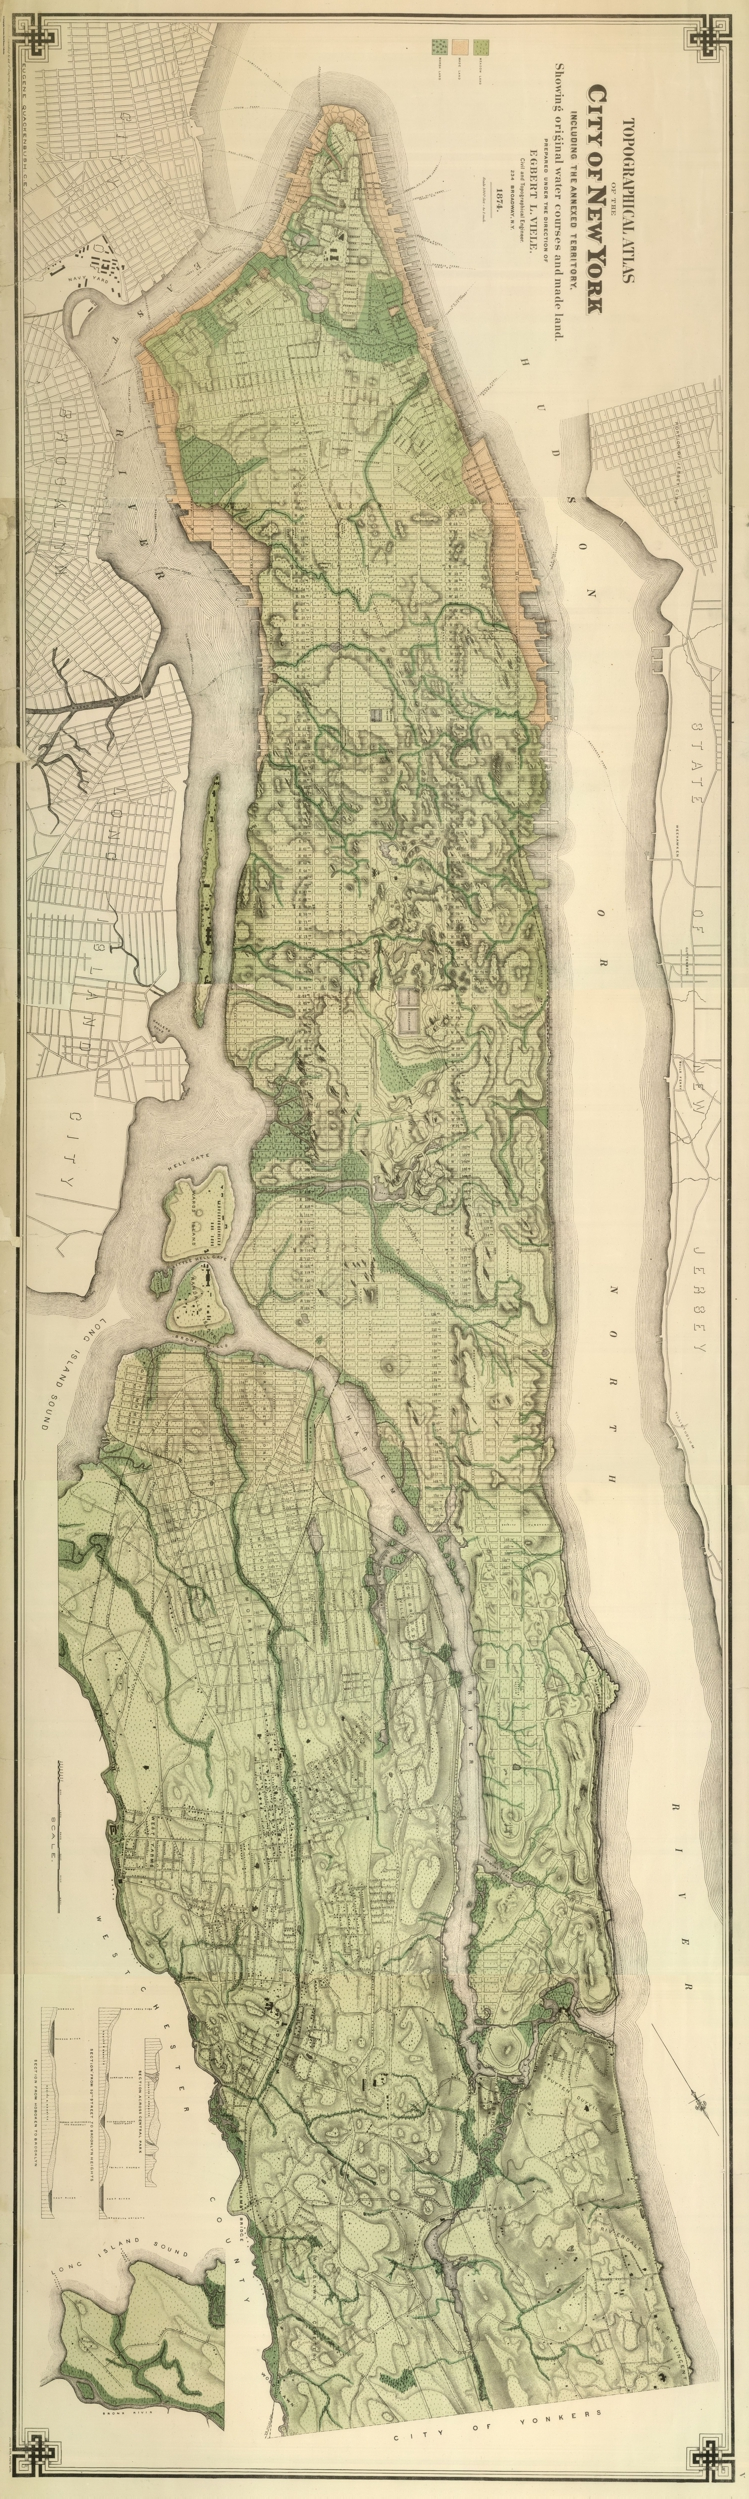 Topographic Atlas of the City of New